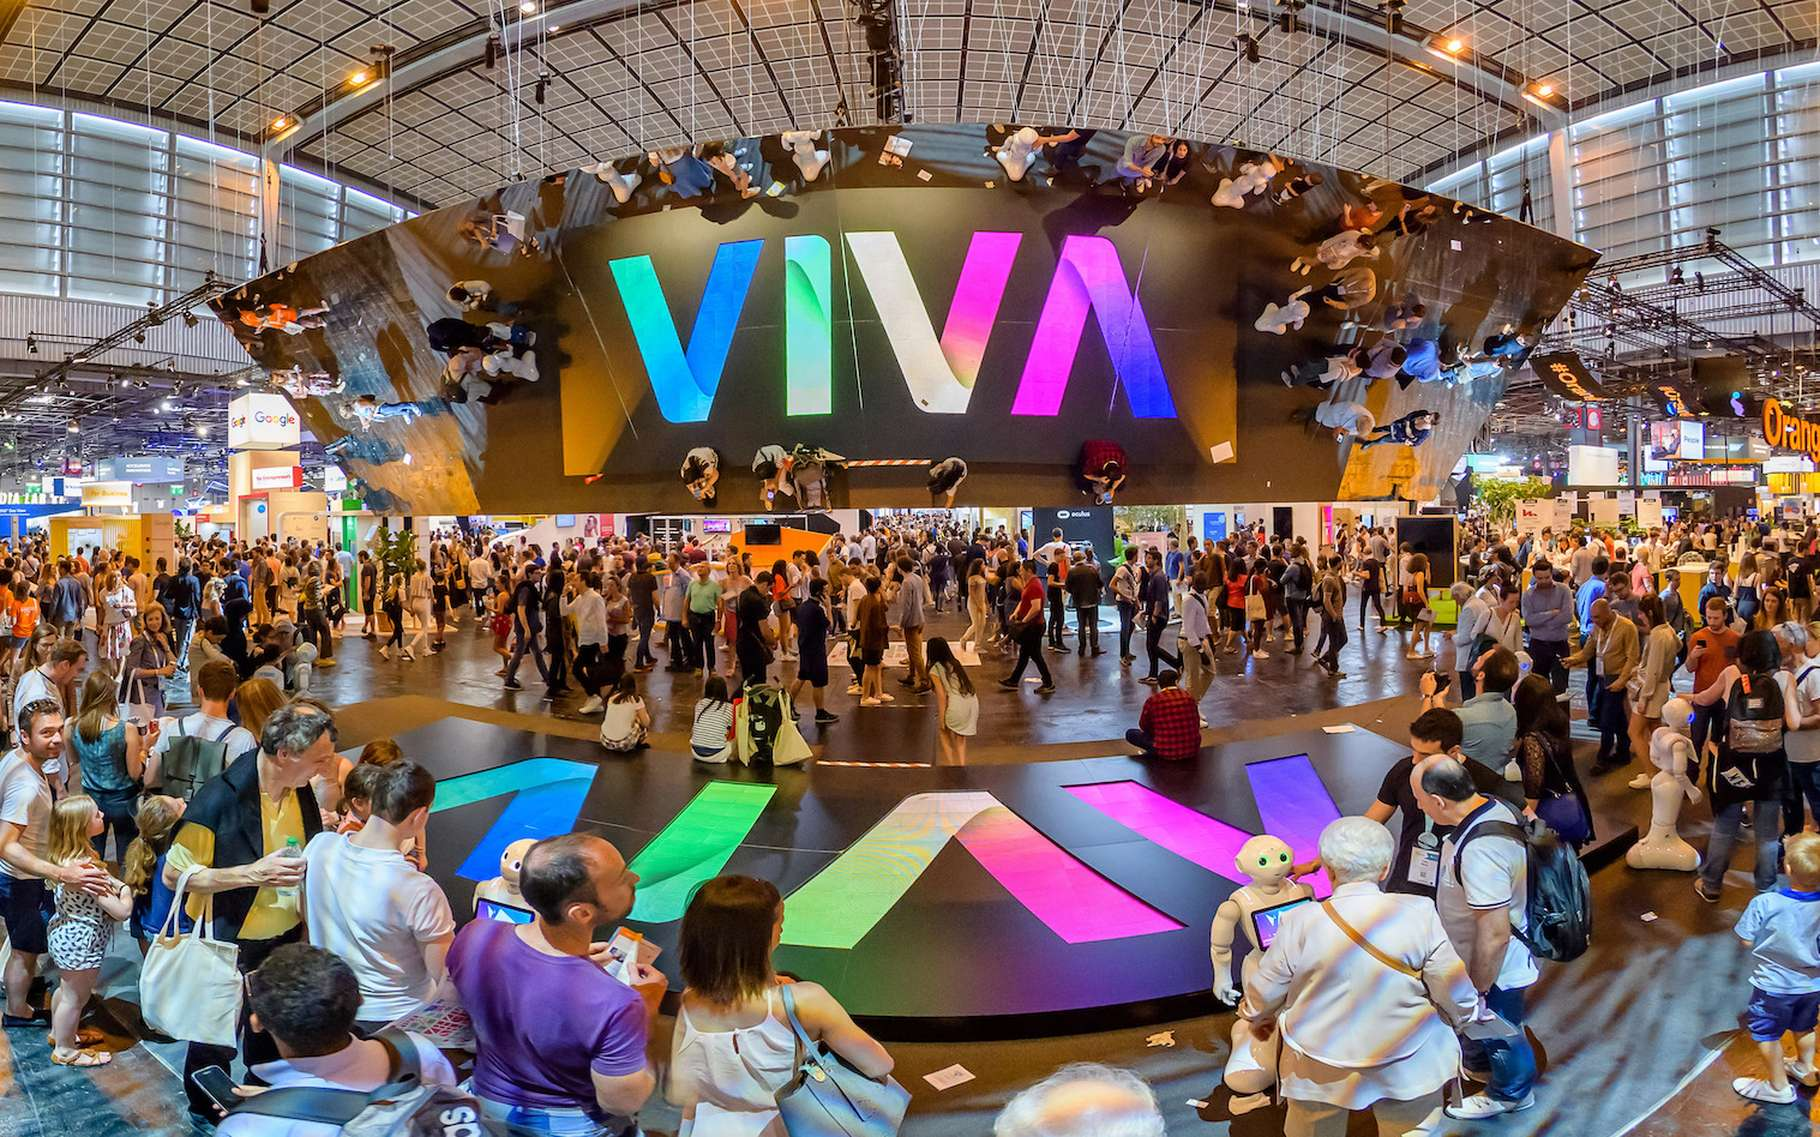 L'édition 2019 de VivaTechnology se tiendra à Paris du 16 au 18 mai. En 2018, ce salon de l'innovation avait attiré plus de 100.000 participants. © Sipa VivaTechnology